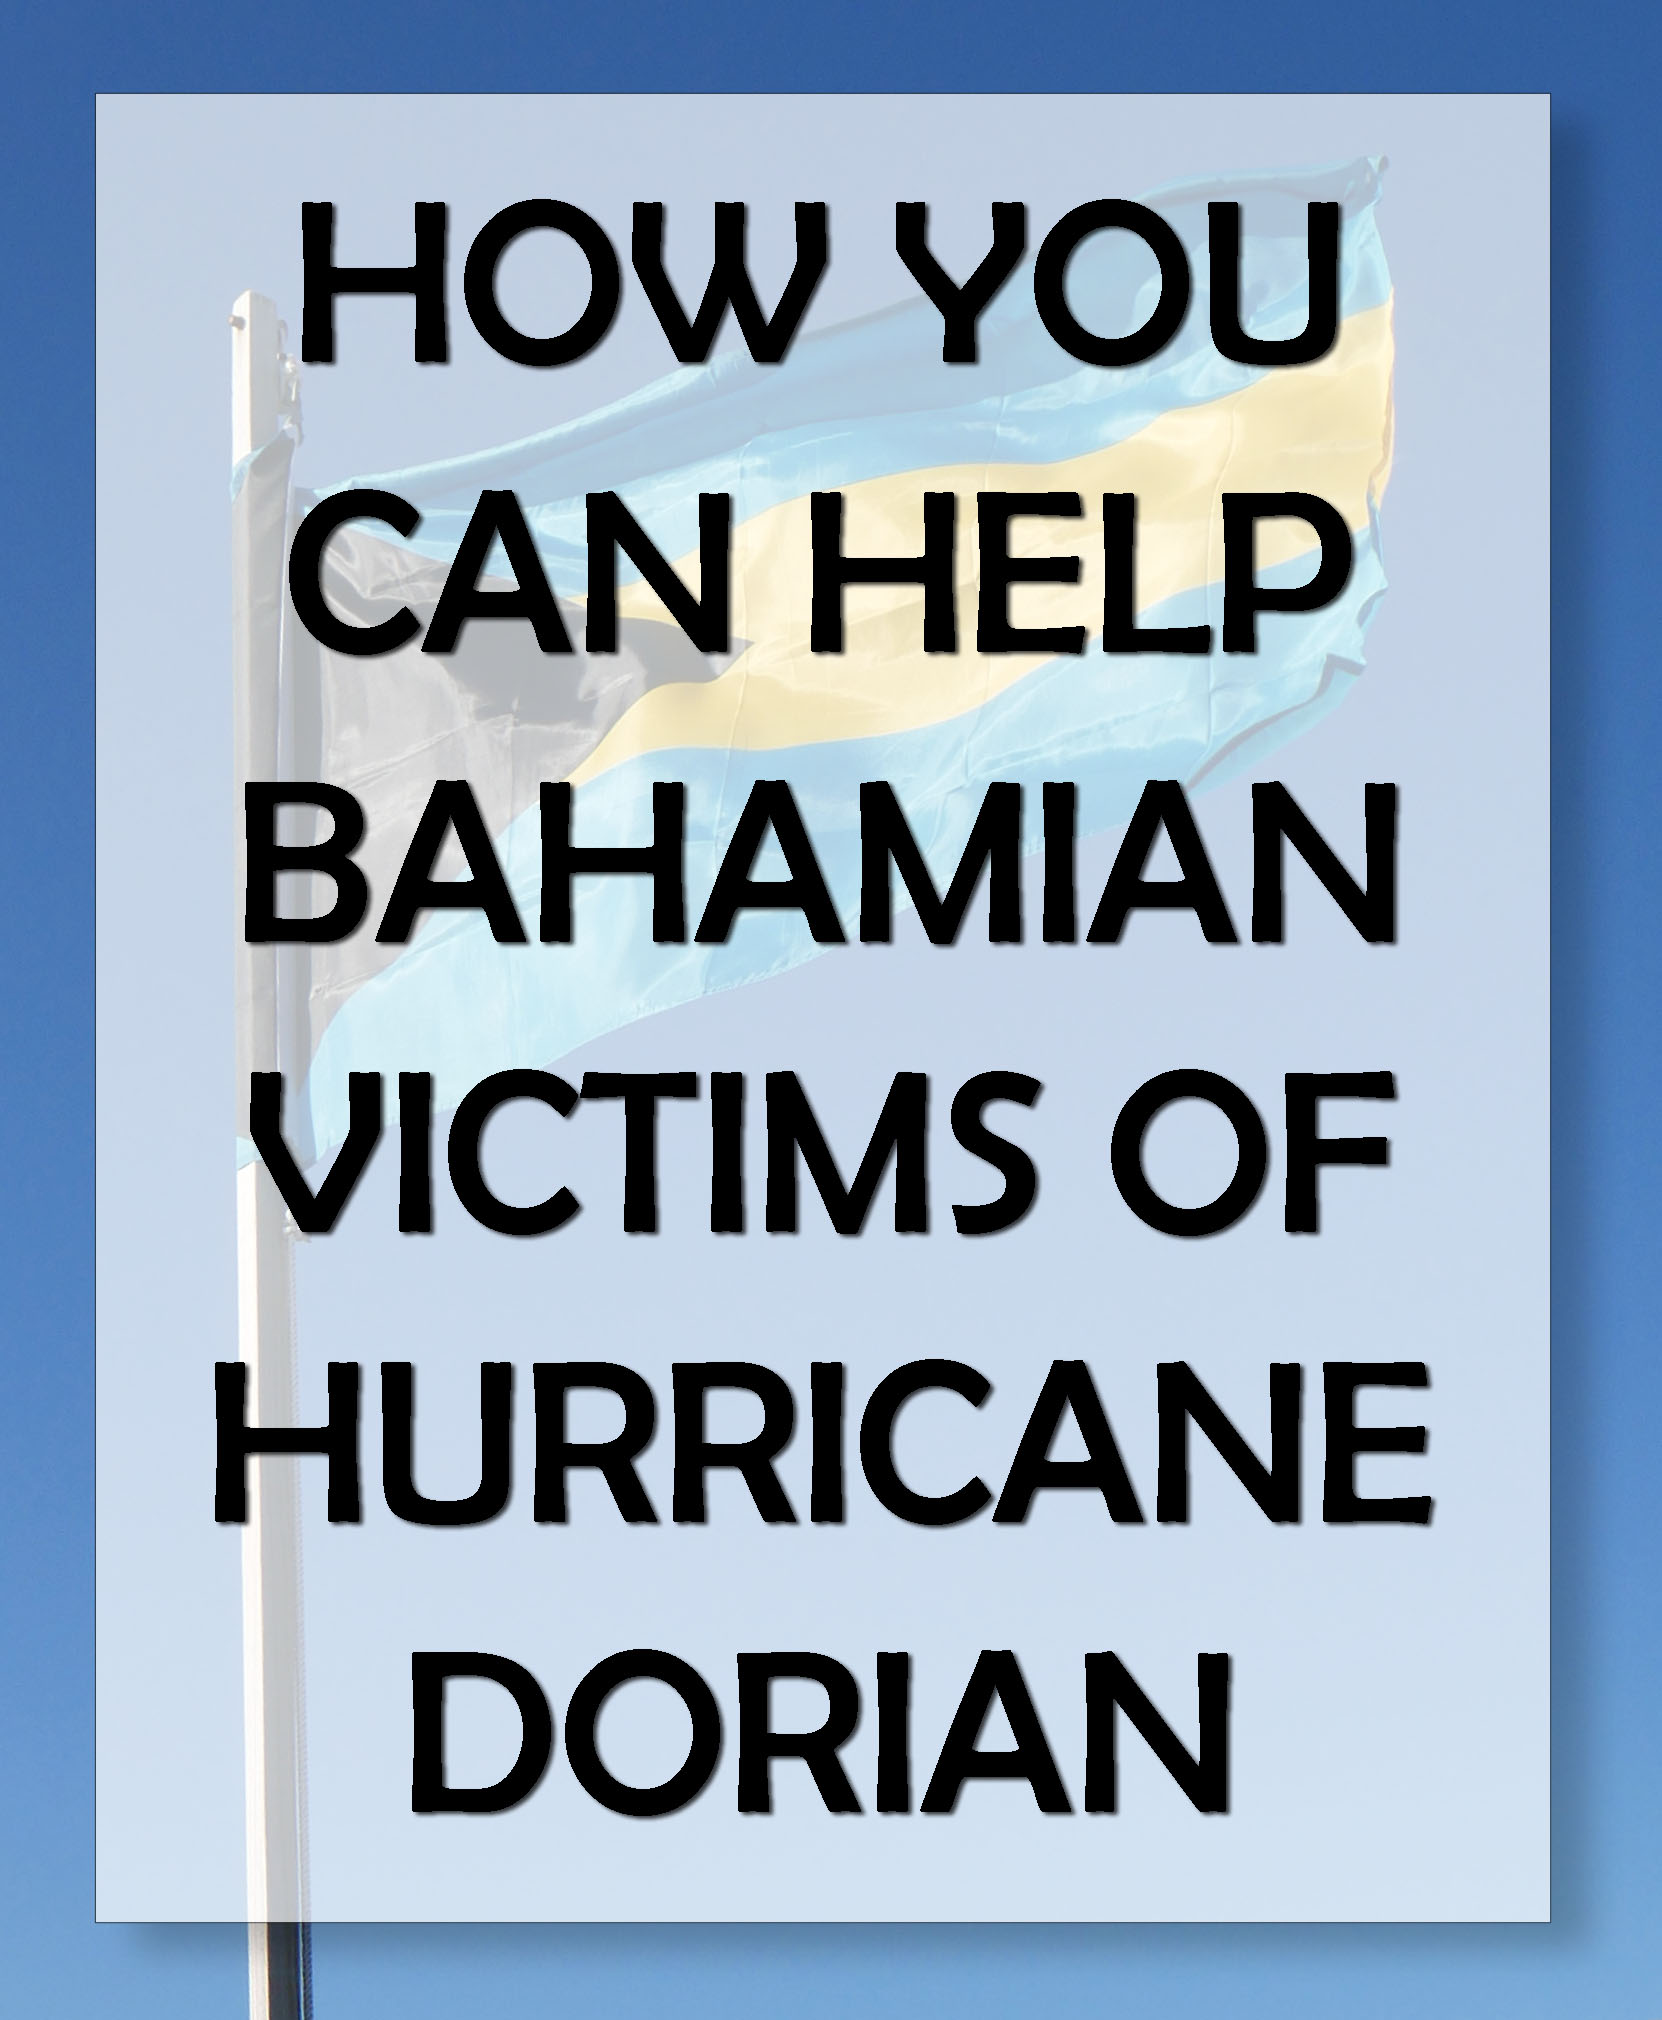 How You Can Help the Bahamian Victims of Hurricane Dorian